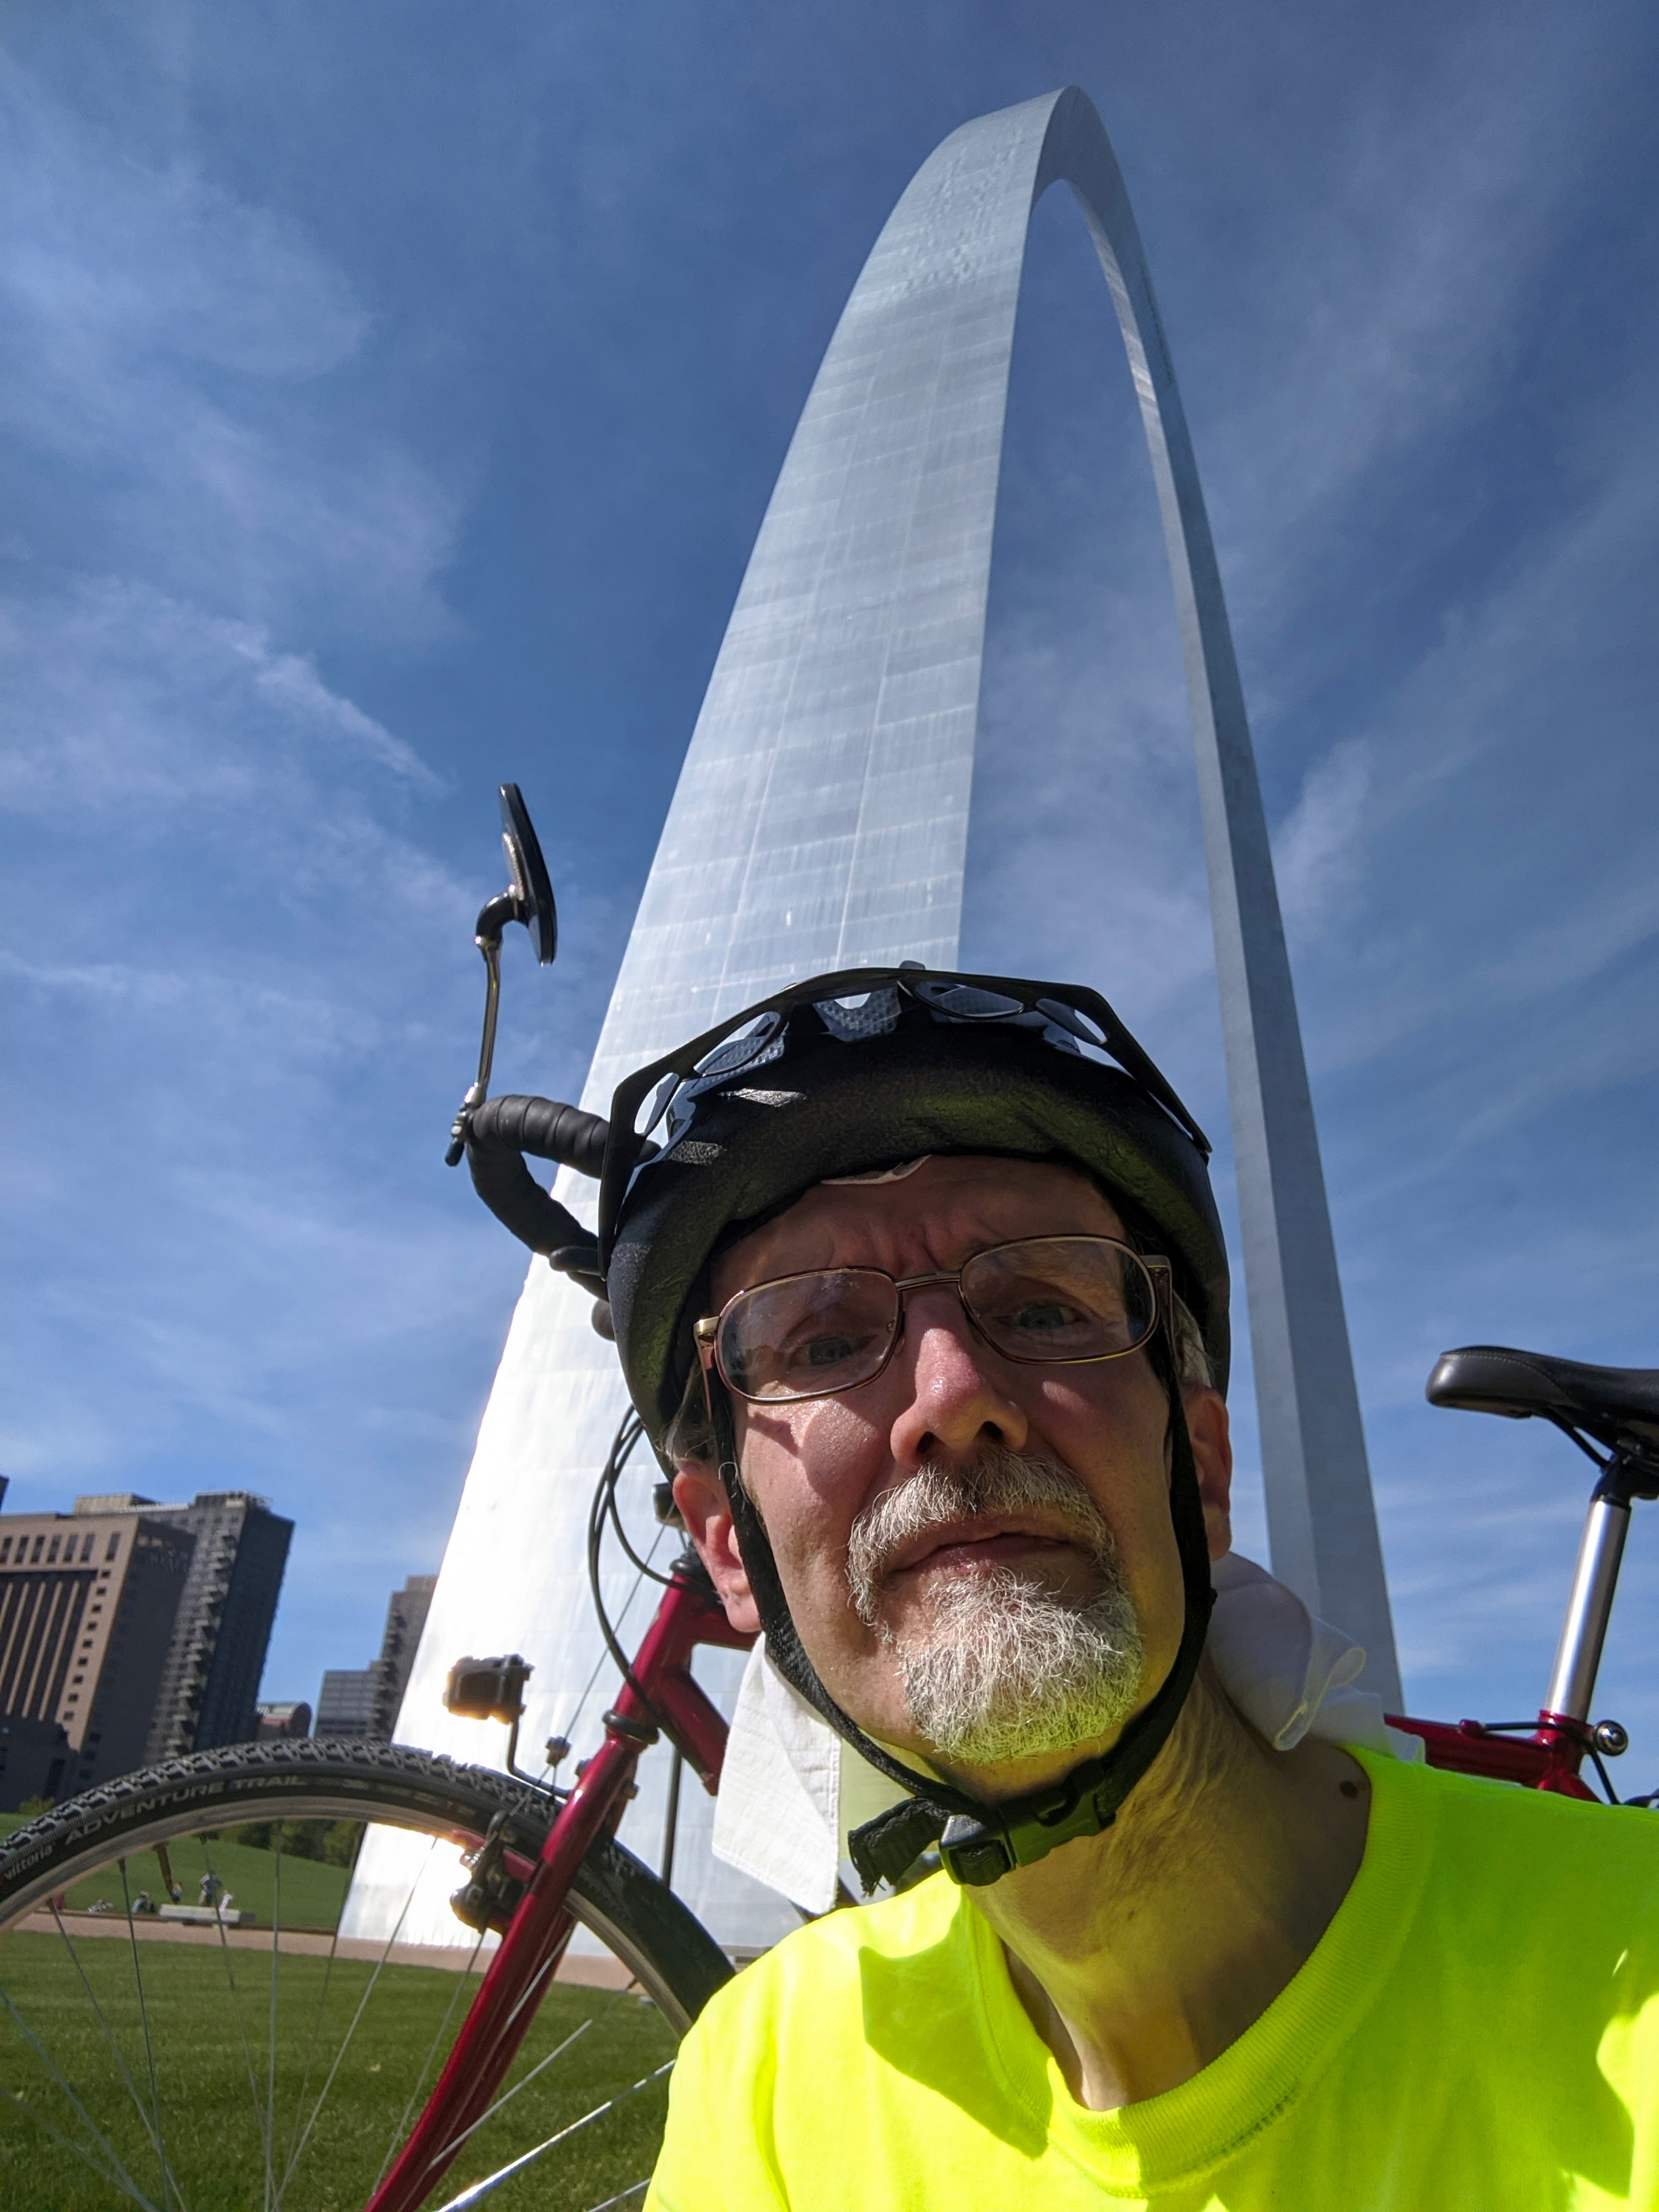 Me My Bike and the Arch.jpg